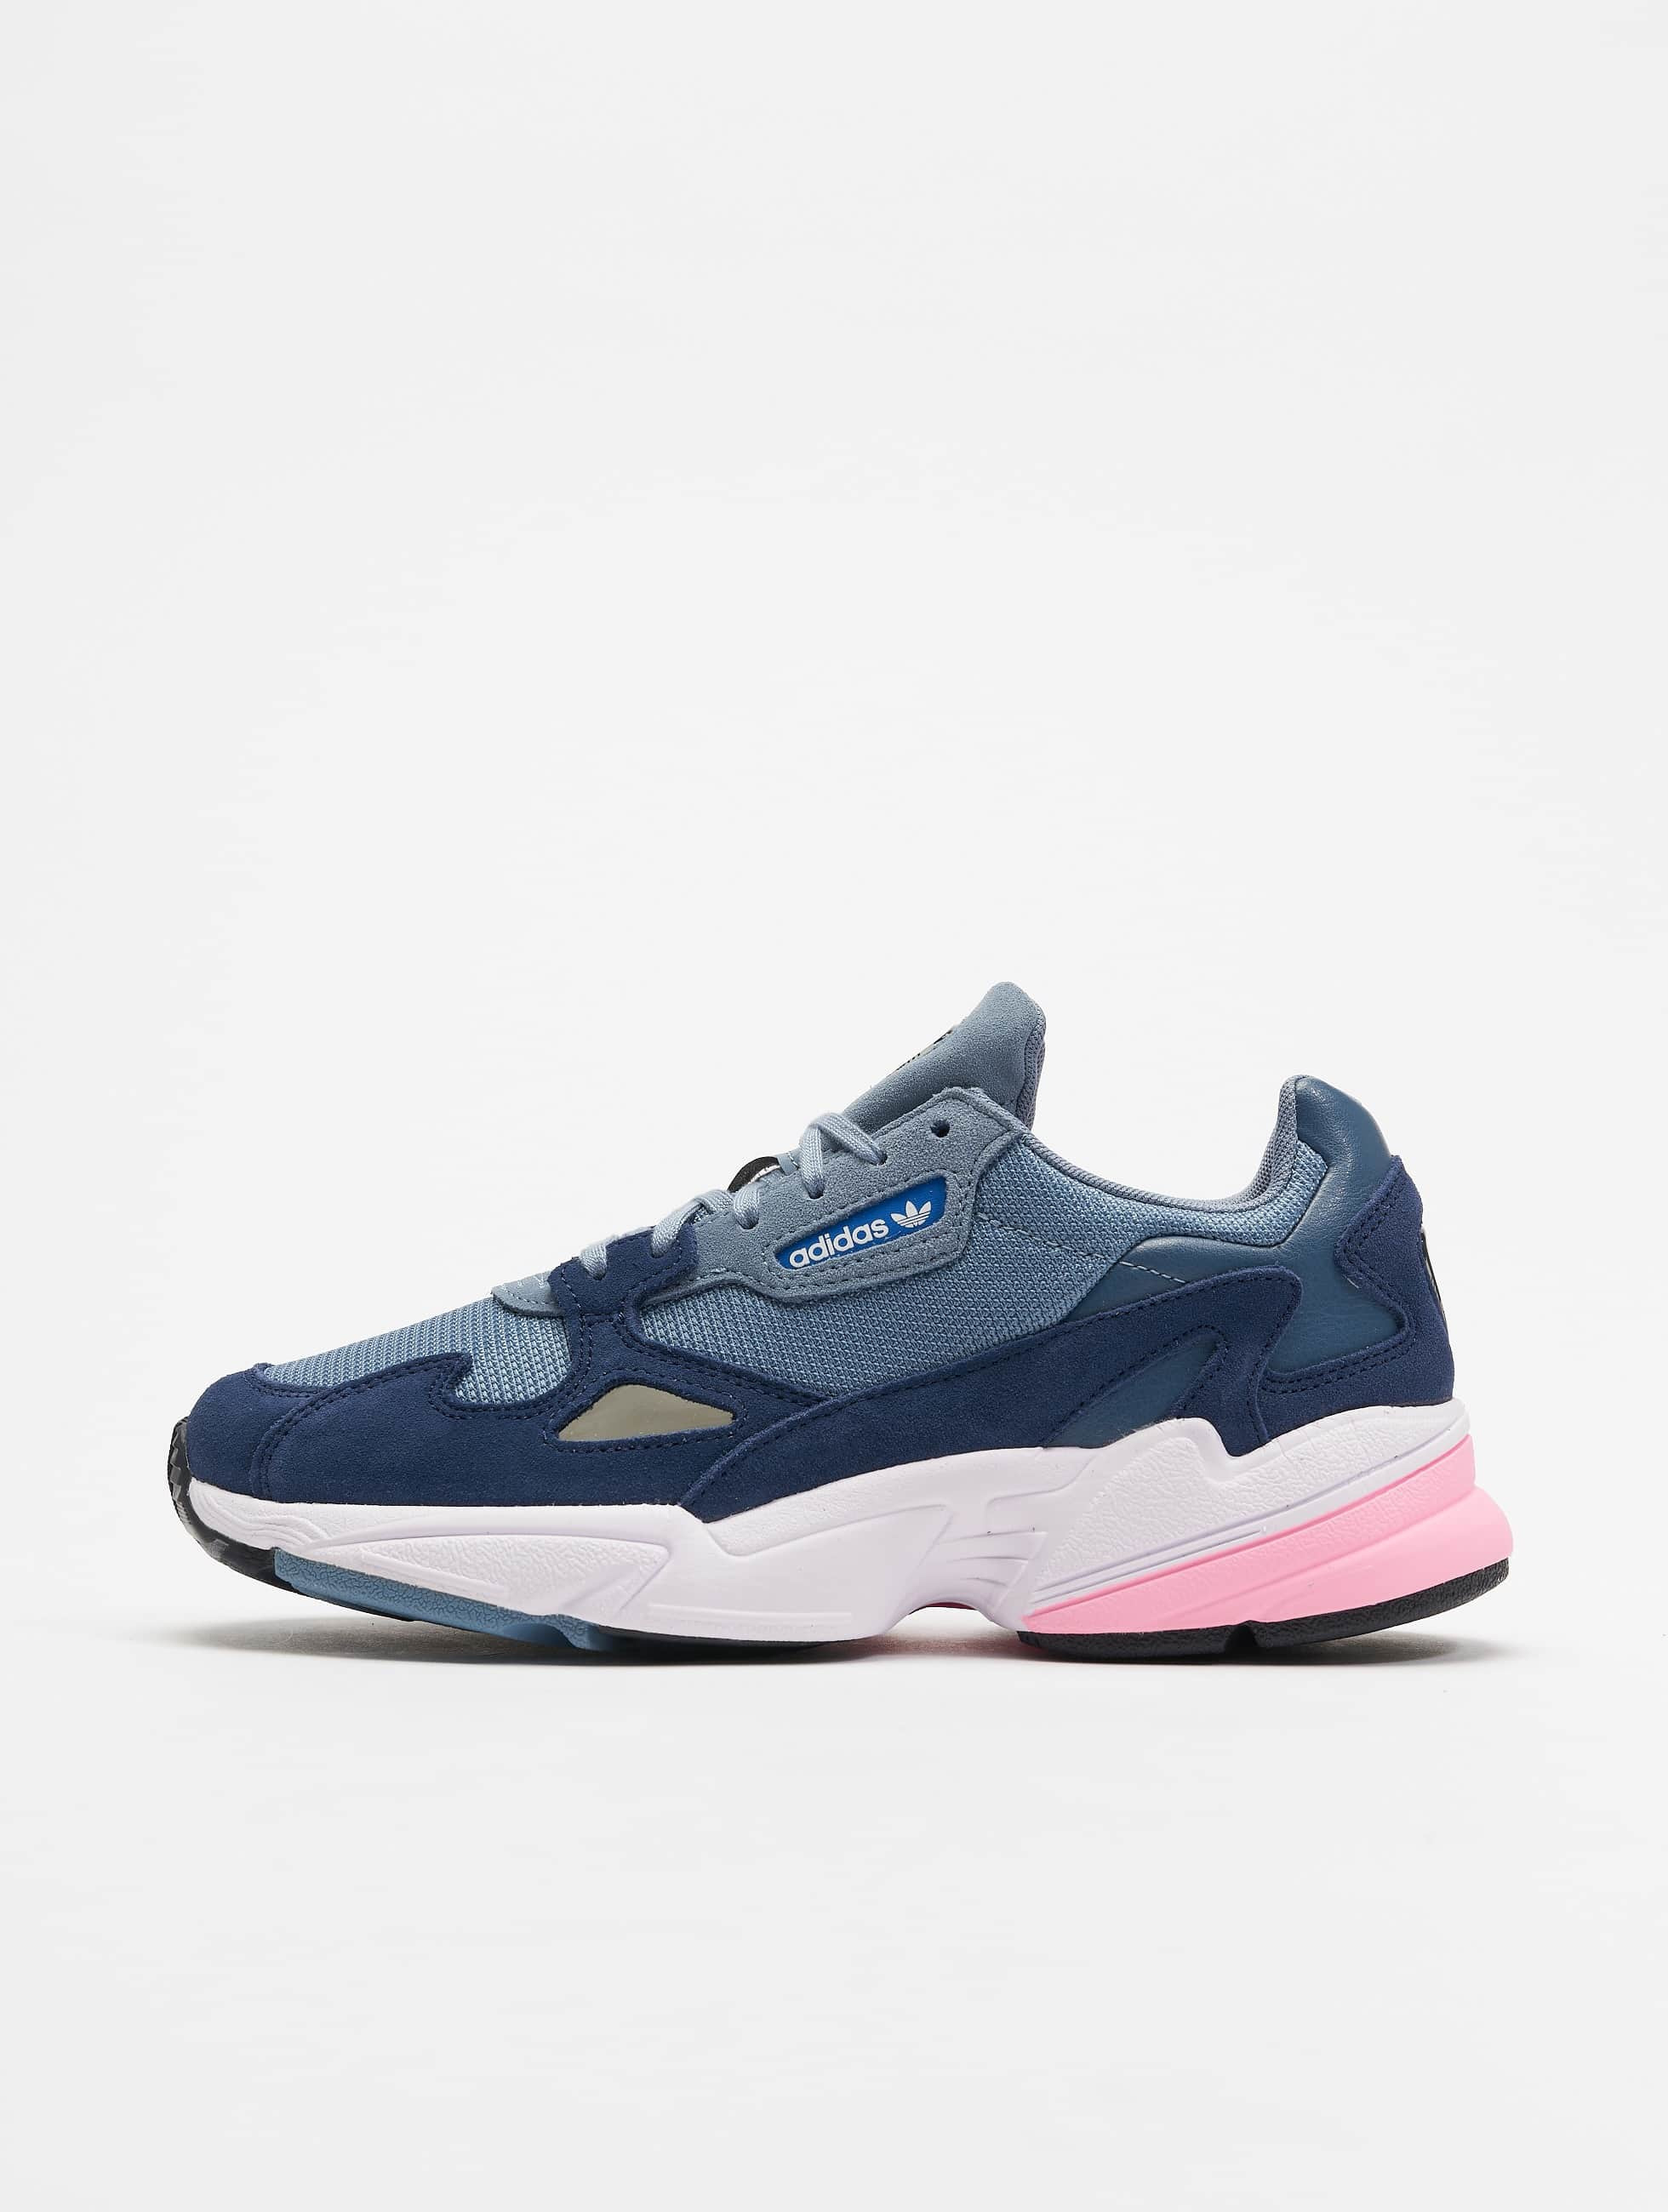 fantastic savings online here official shop Adidas Originals Falcon W Sneakers Raw Grey